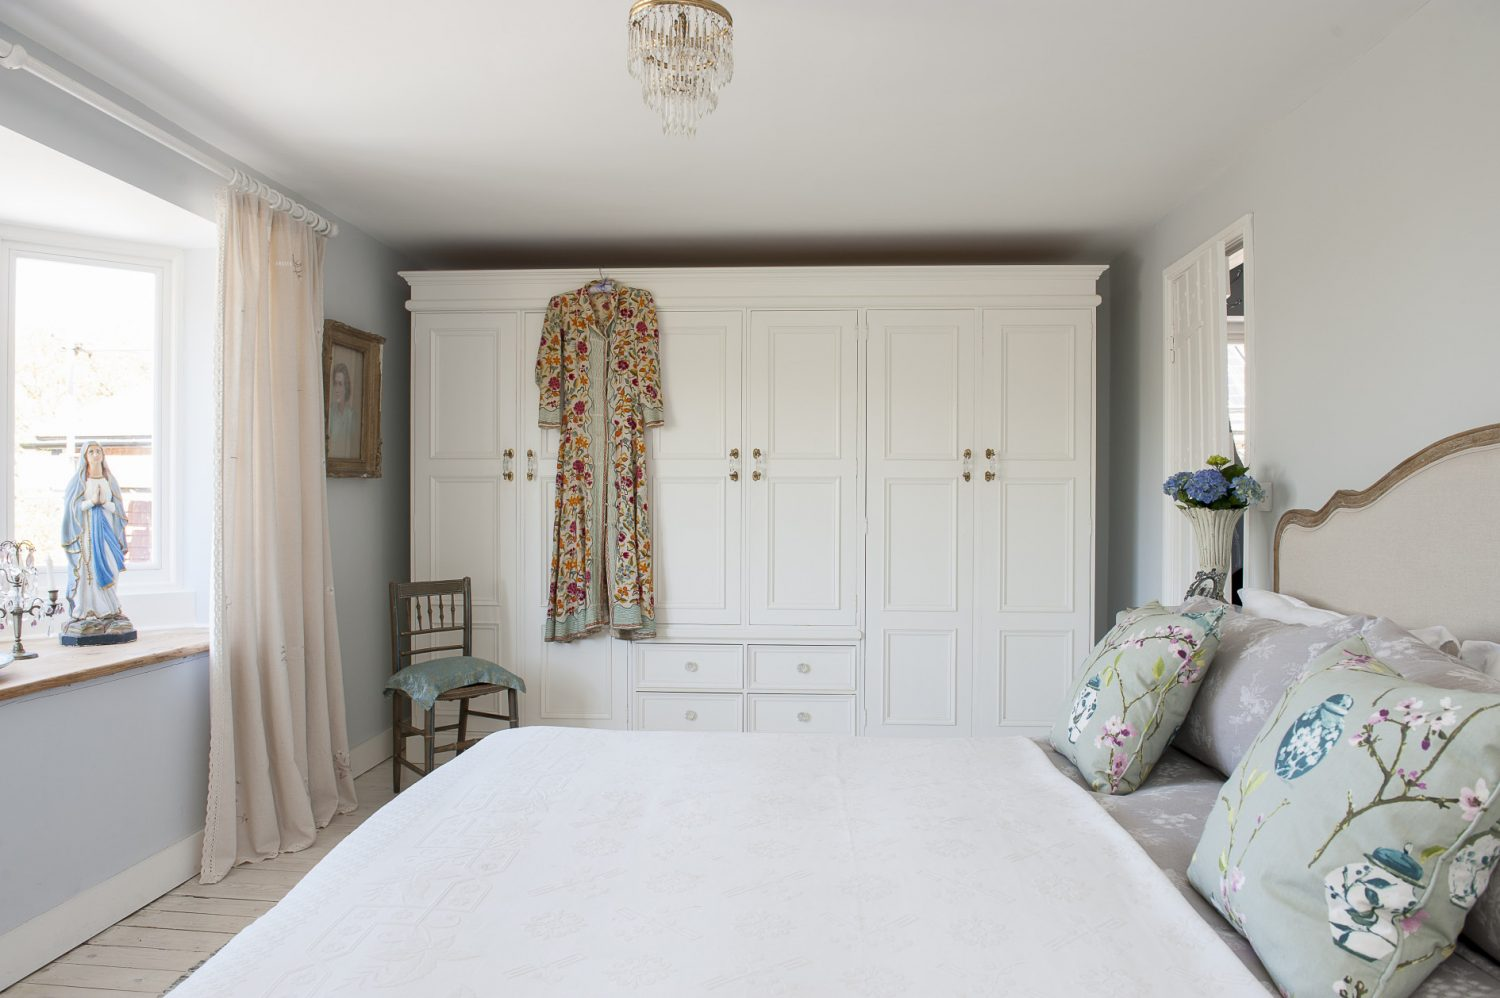 The main bedroom at the back of the cottage has wonderful views out over the garden to the fields beyond